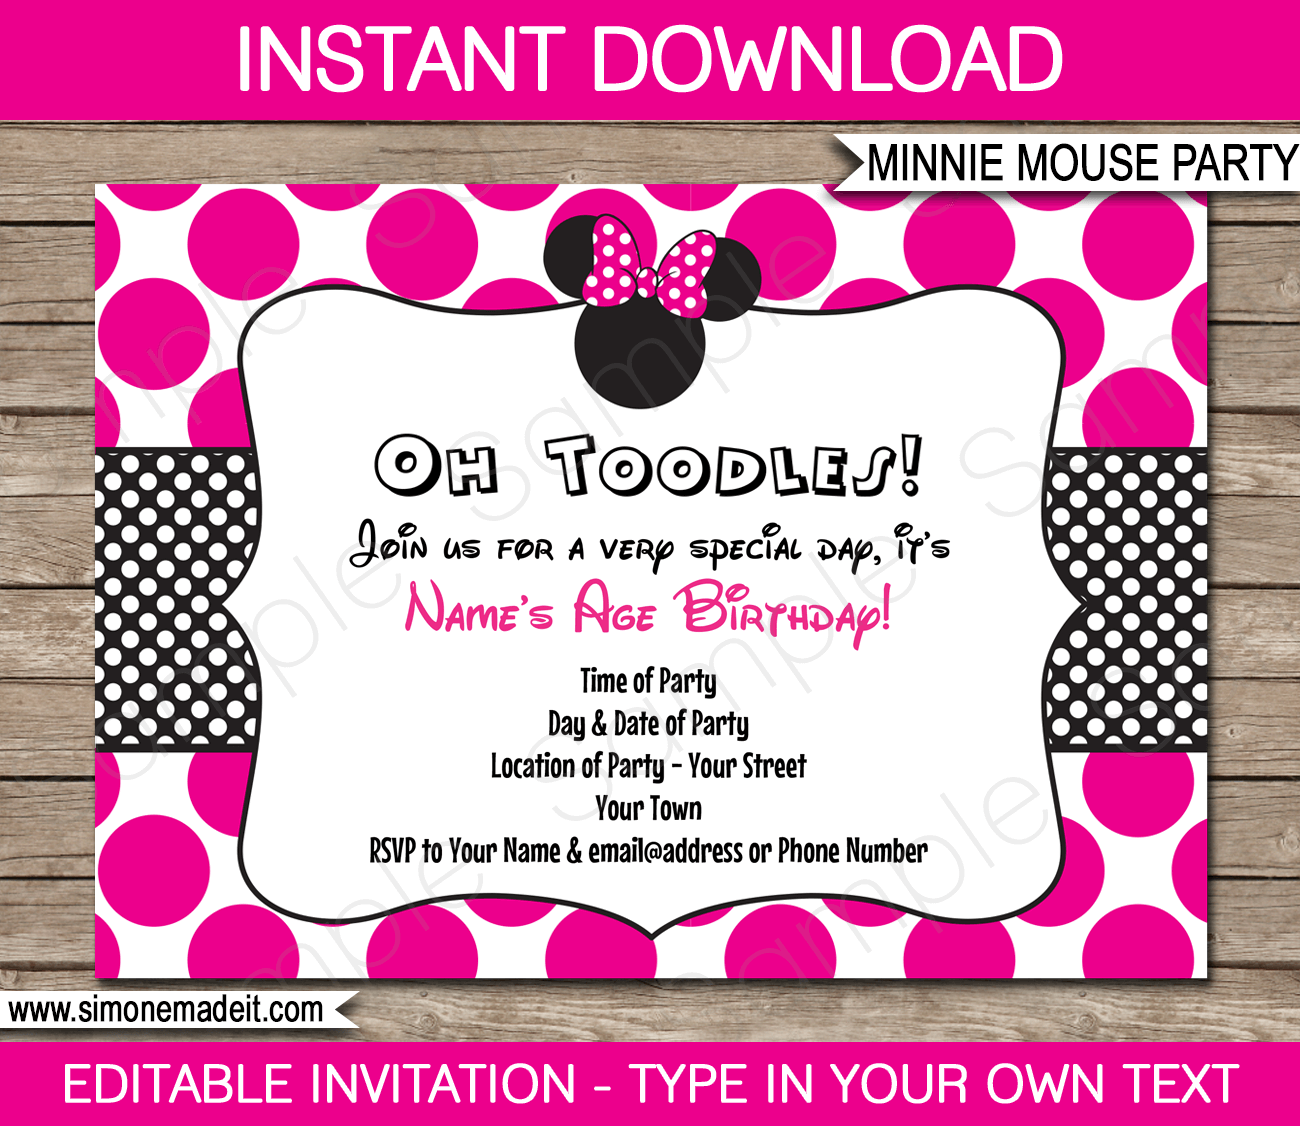 minnie mouse party invitations template | birthday party, Invitation templates